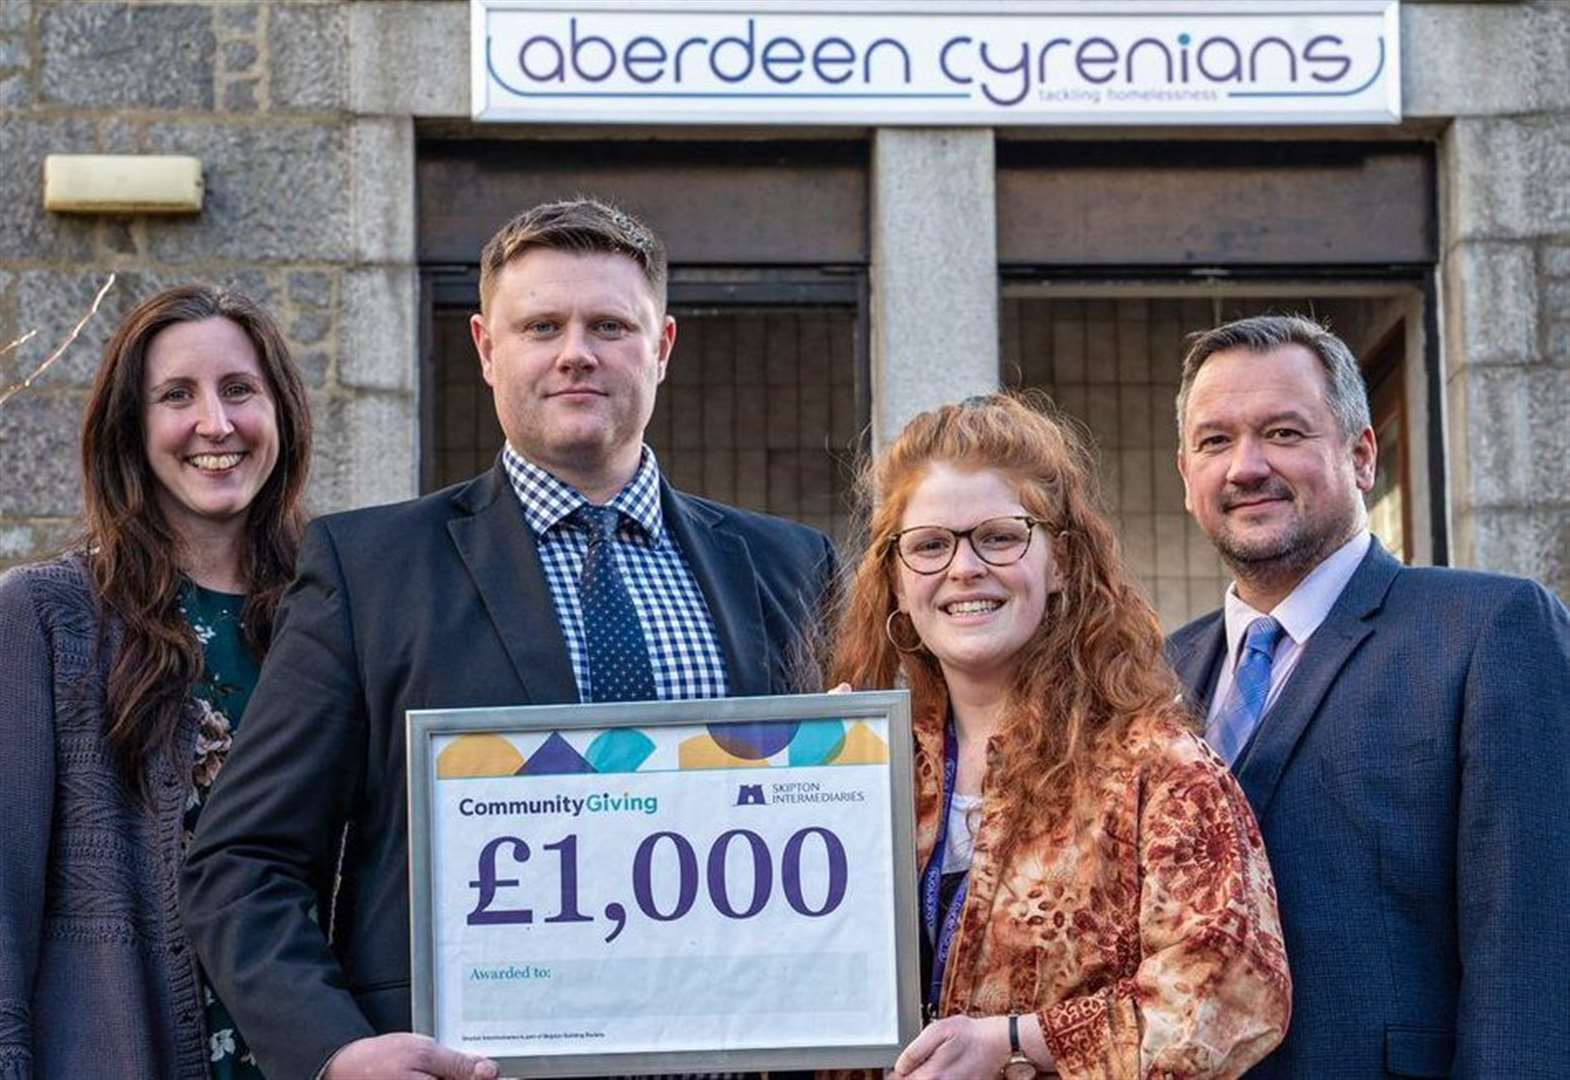 Aberdeenshire business doubles charity donation